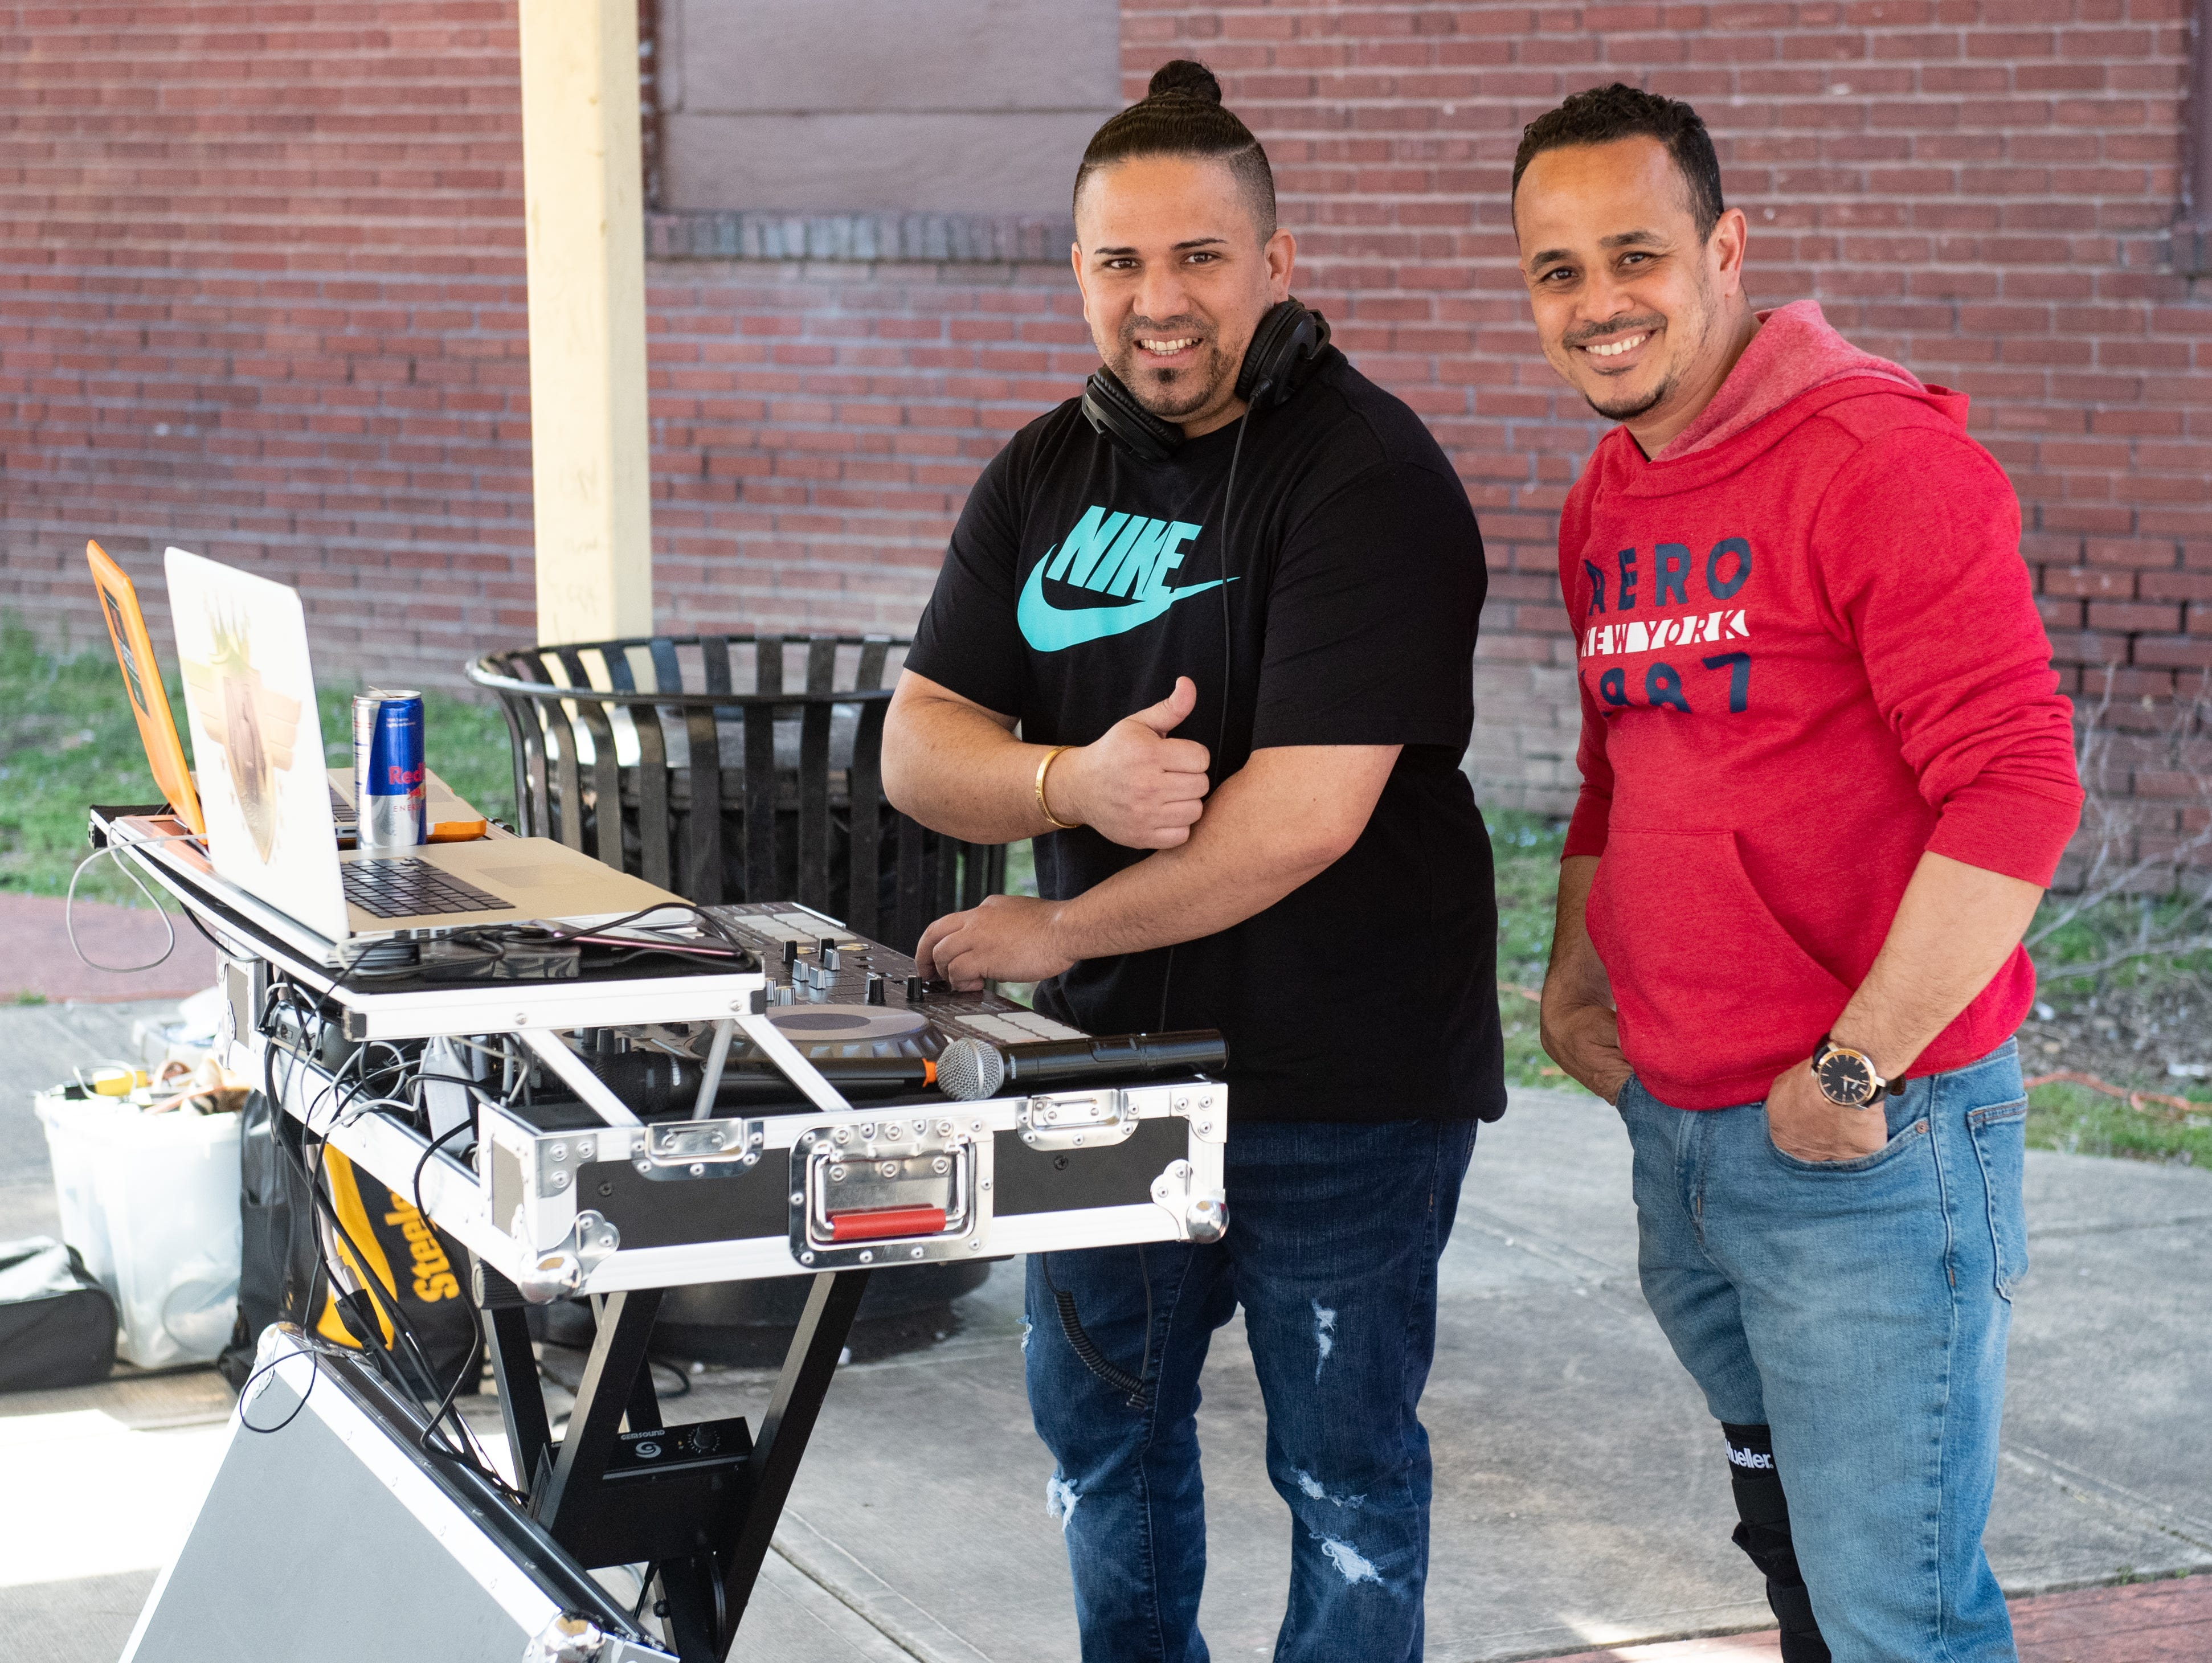 Music is provided by DJ Hery One (left) and DJ Male (right) during the Adelante Festival at Renaissance Park, March 30, 2019.